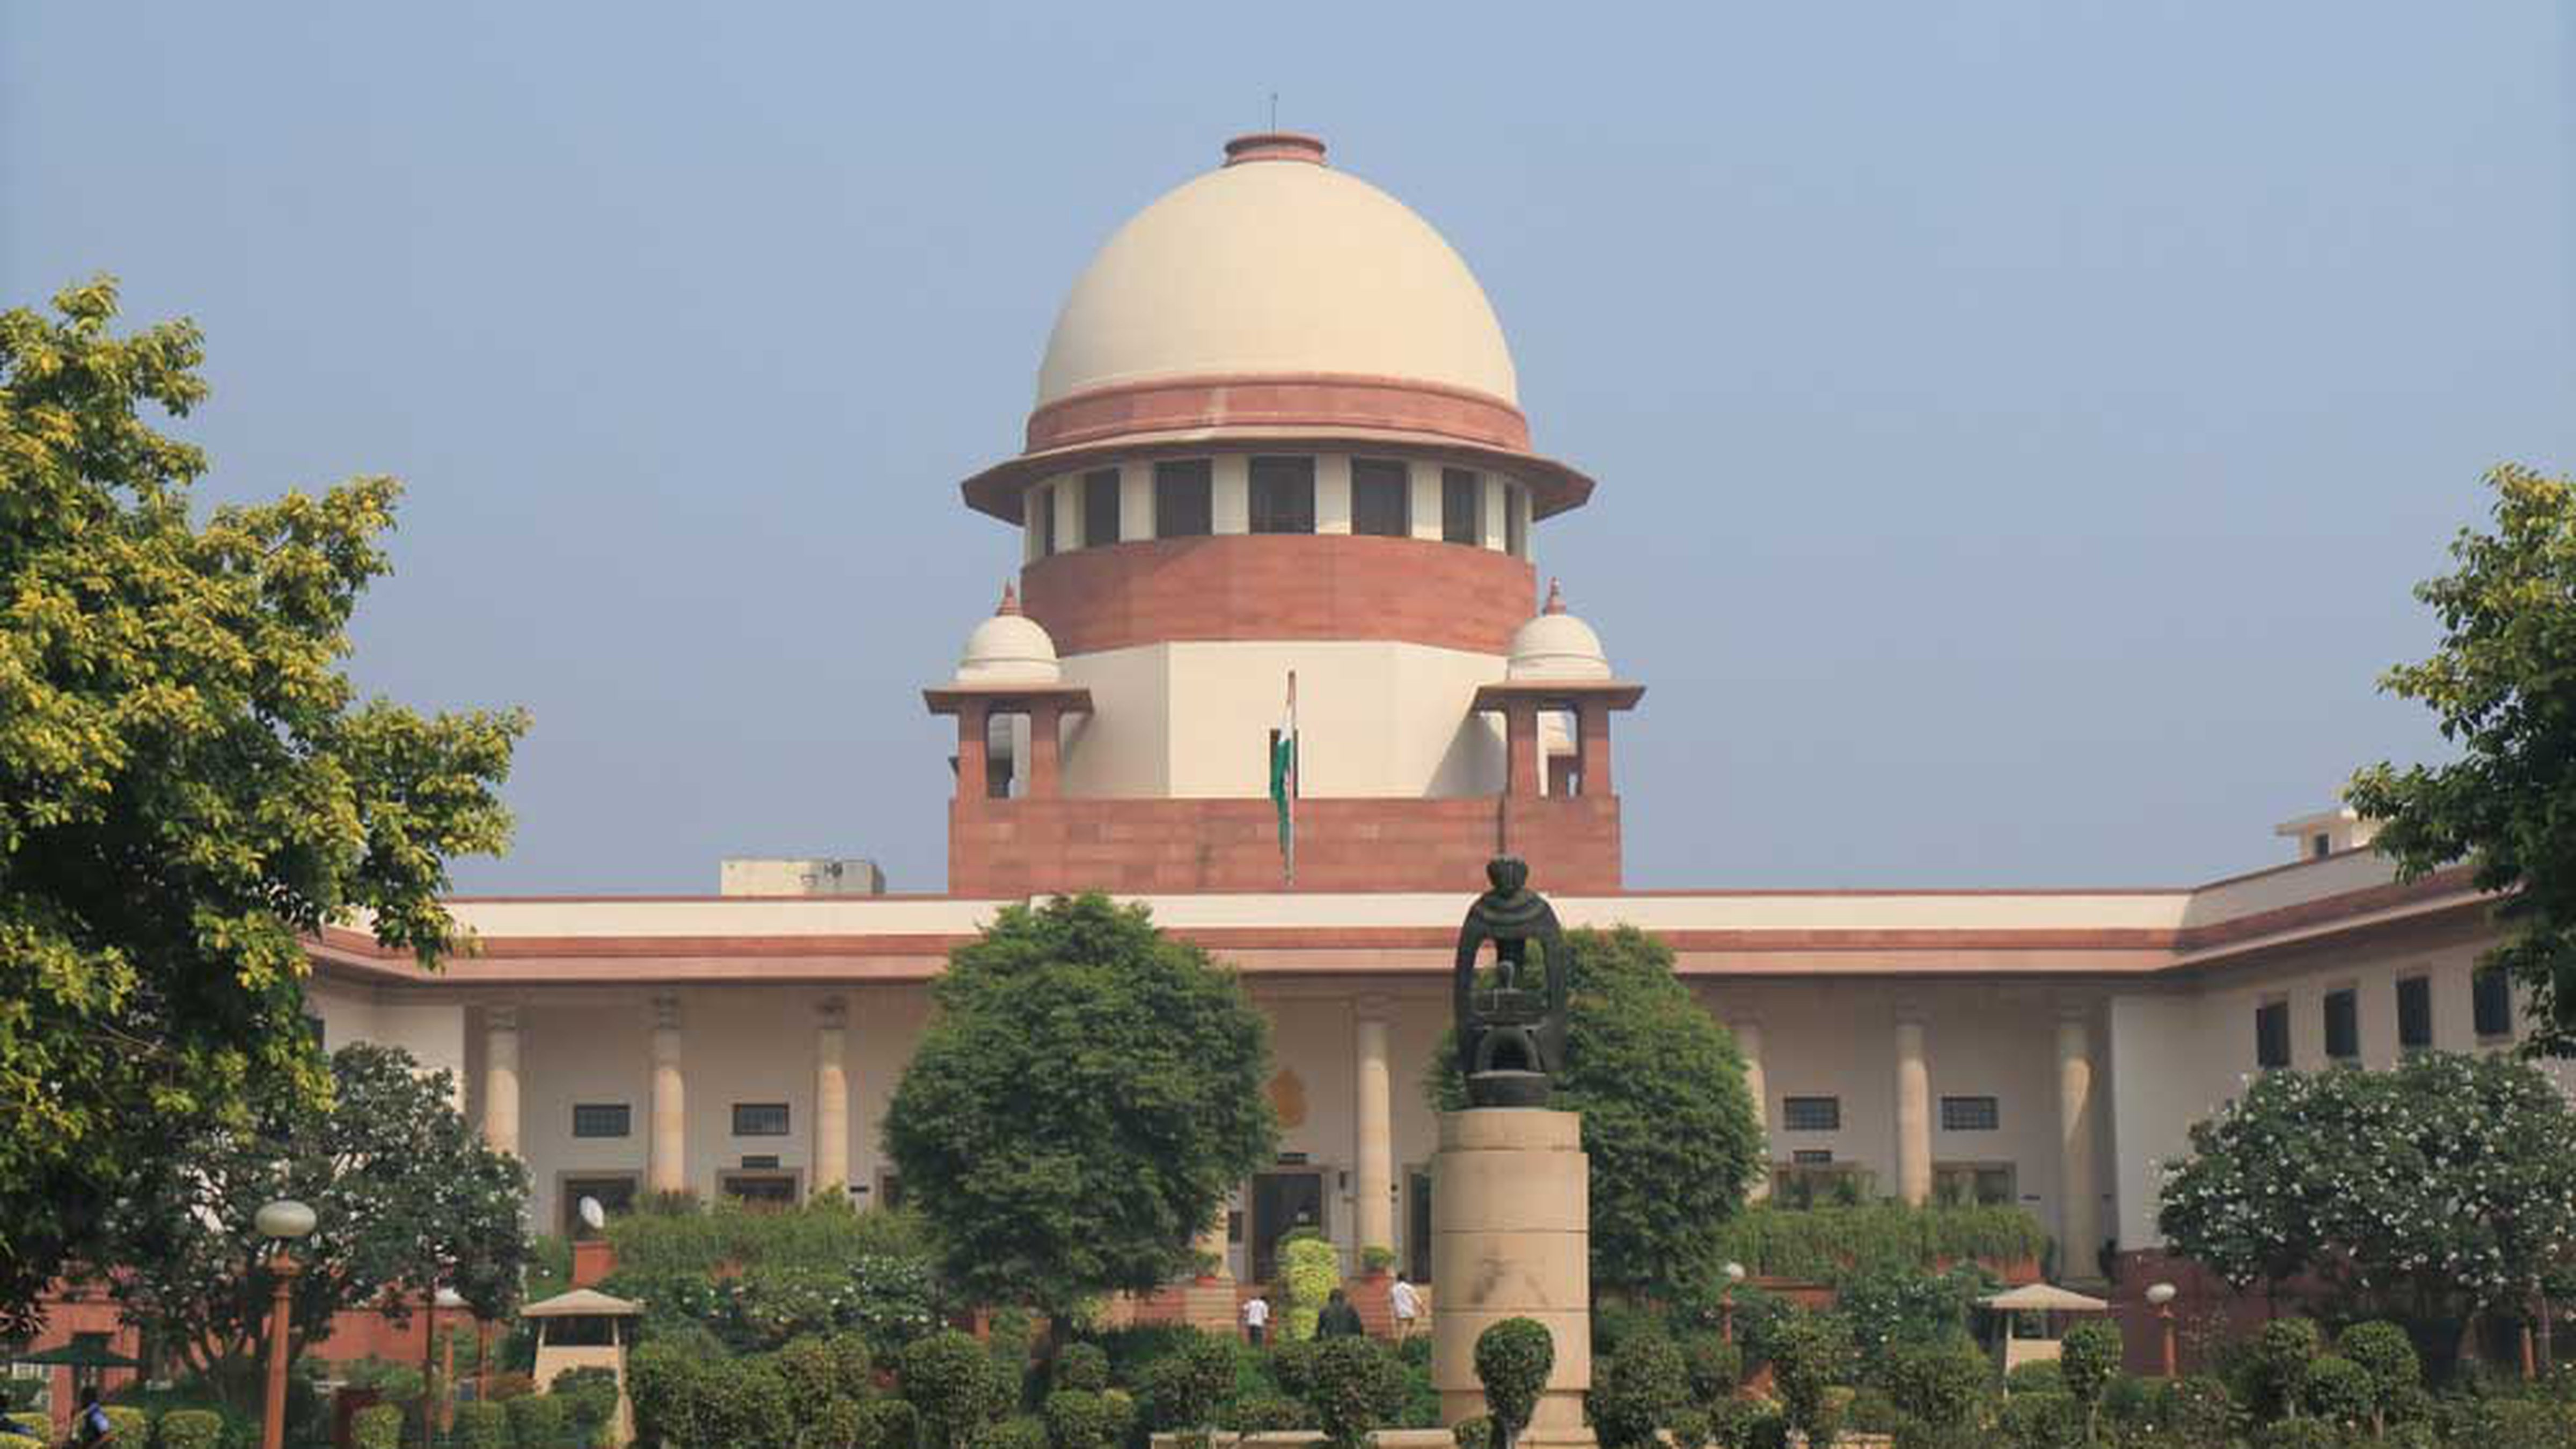 An NGO has alleged in the Supreme Court that electoral bonds worth over Rs 2,000 crore had been sold in the run-up to the Lok Sabha polls.